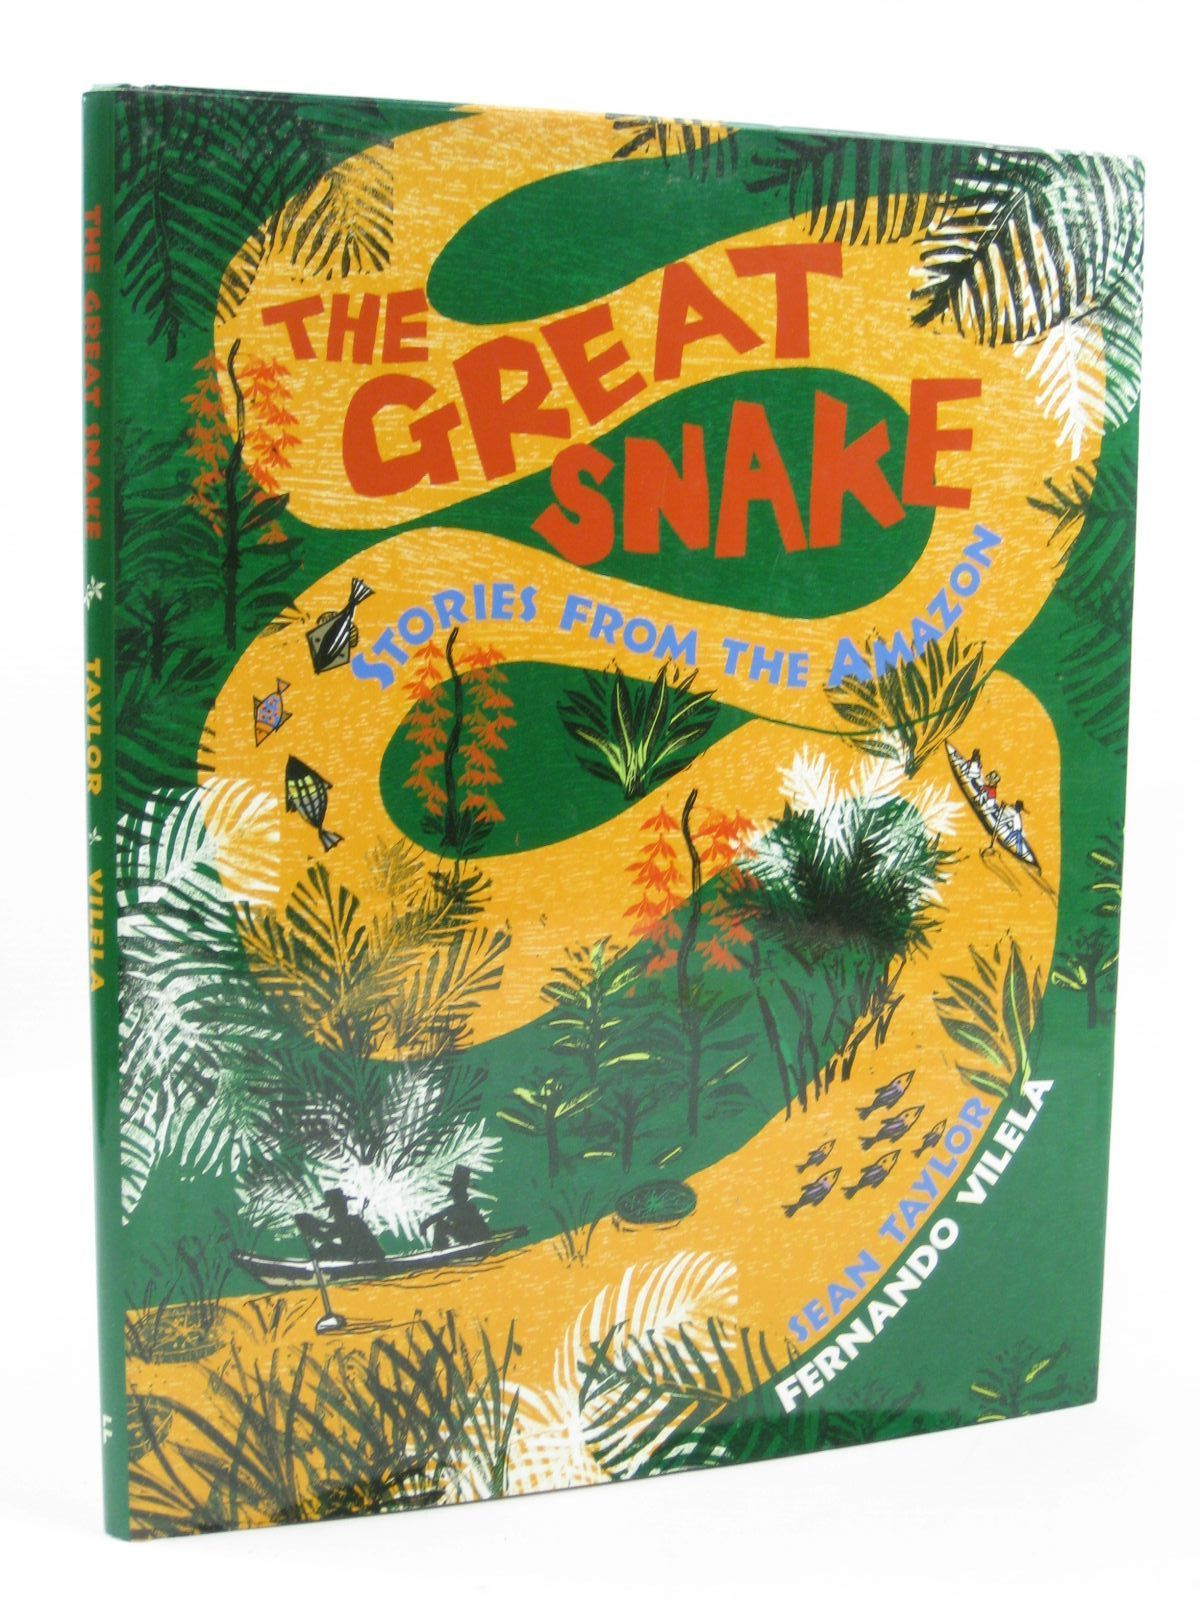 Photo of THE GREAT SNAKE STORIES FROM THE AMAZON written by Taylor, Sean illustrated by Vilela, Fernando published by Frances Lincoln Children's Books (STOCK CODE: 1507033)  for sale by Stella & Rose's Books